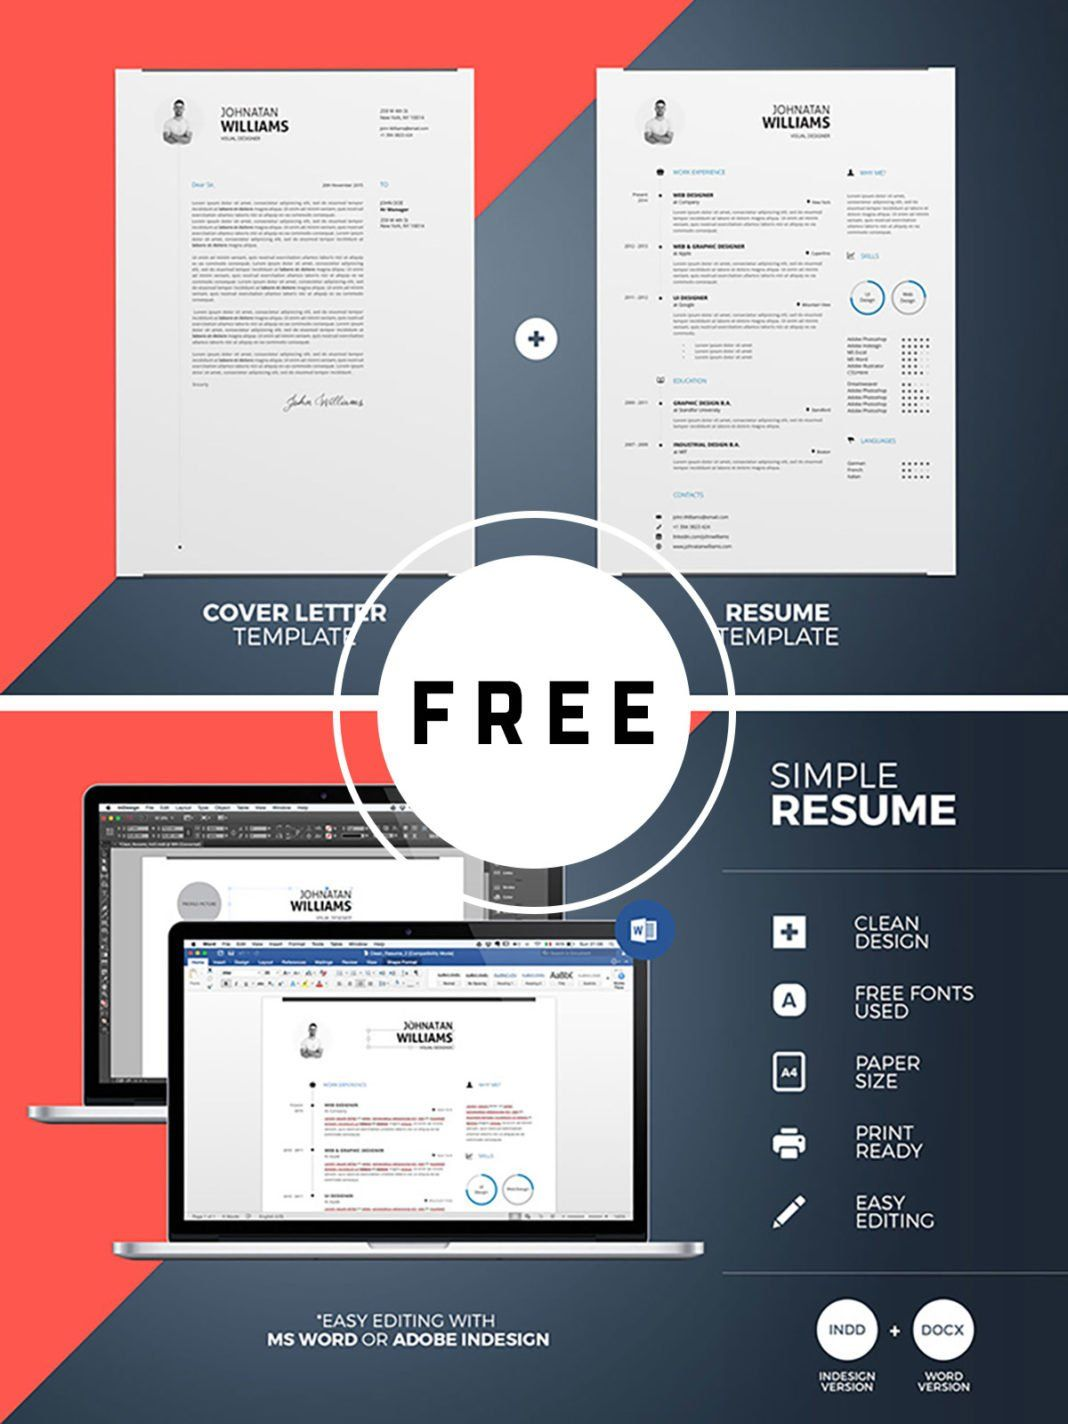 Free print CV template — download resume in INDD, DOC